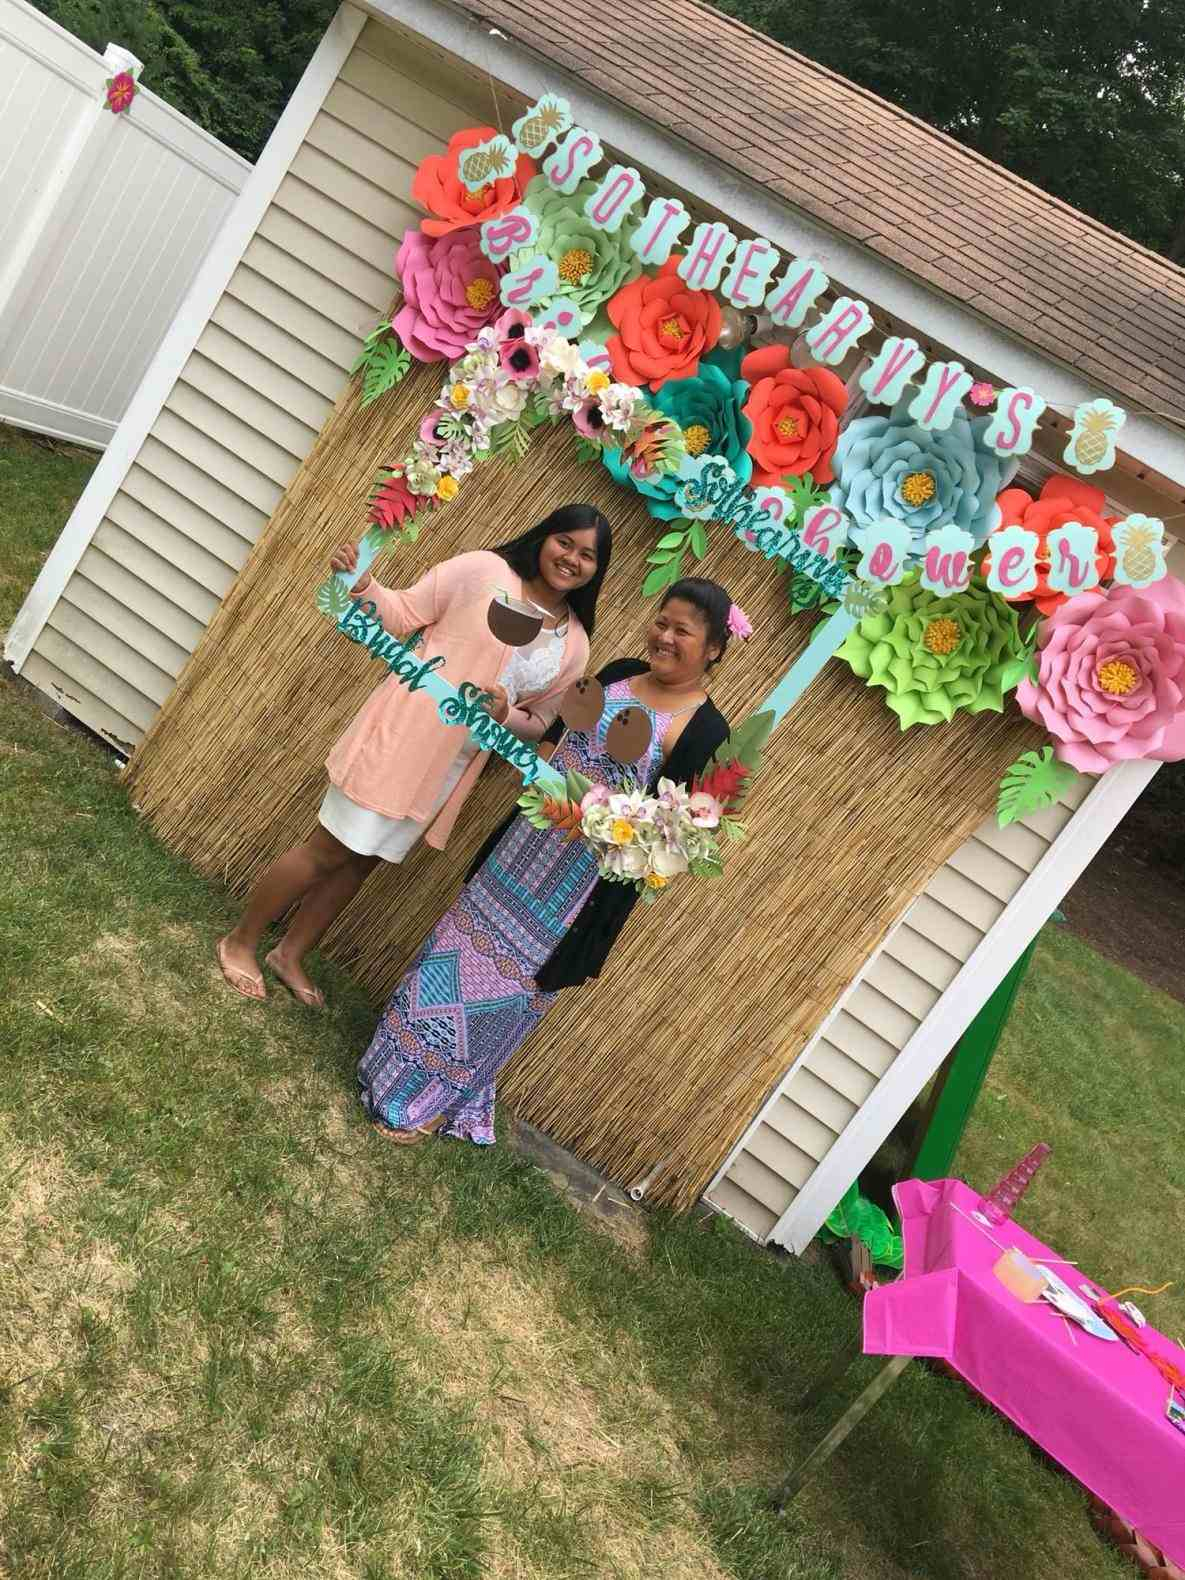 Backyard Luau Party Ideas Front Yard Landscape Fence pertaining to 12 Clever Designs of How to Craft Luau Backyard Party Ideas